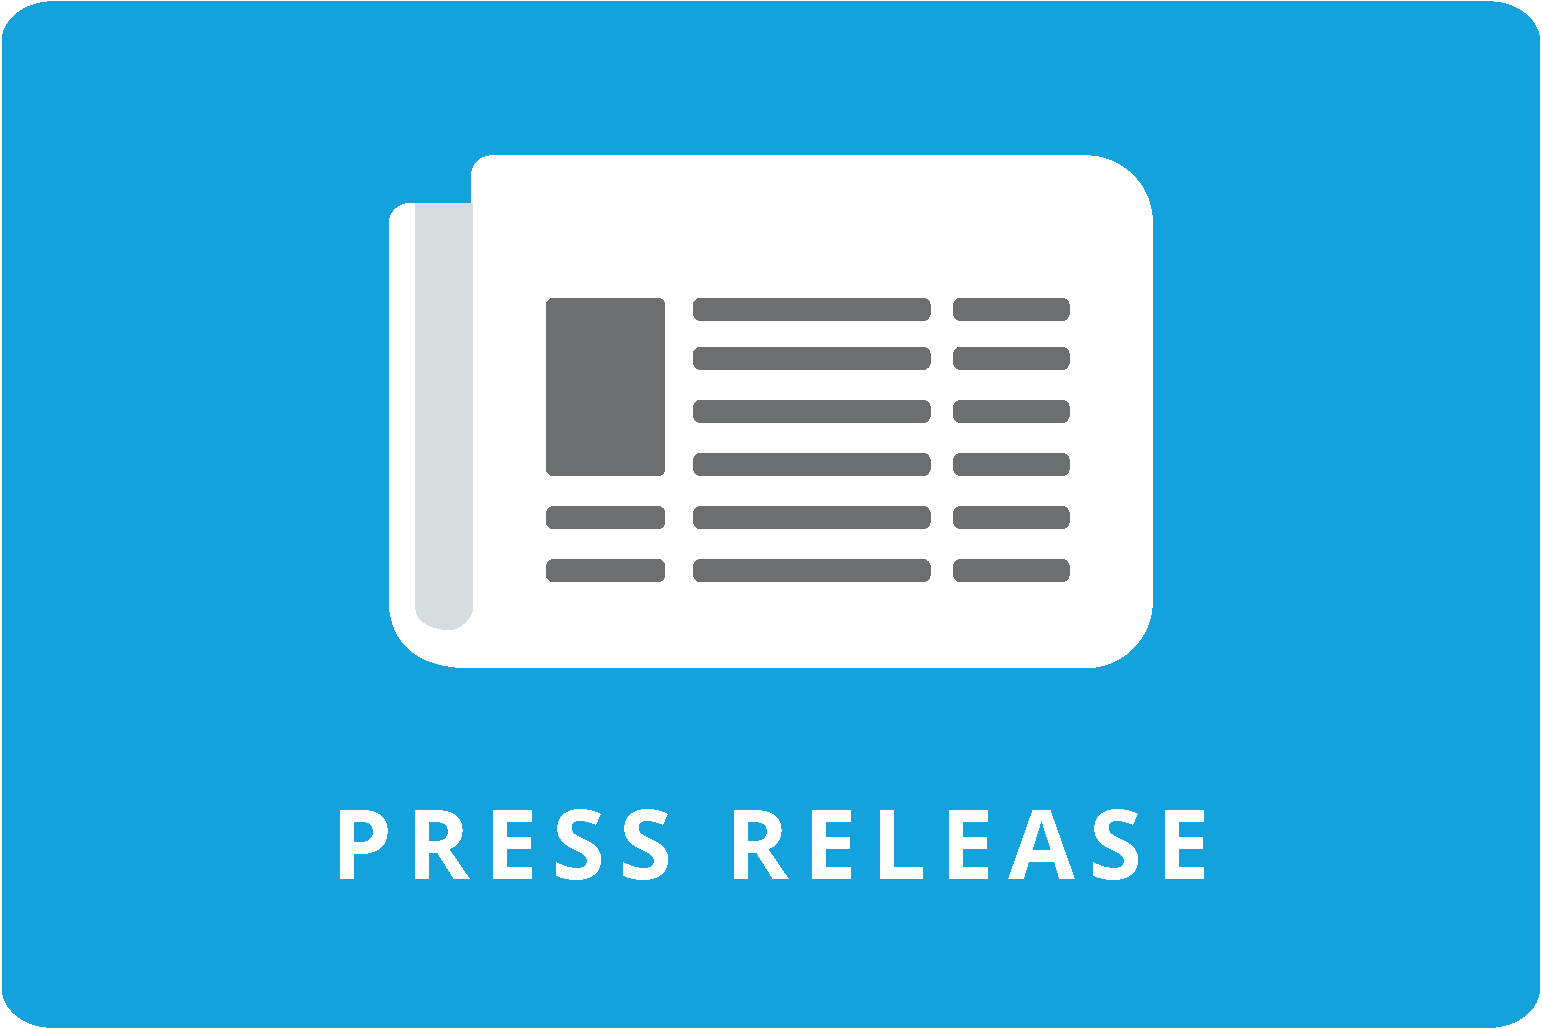 Press Release Template Press Release Template 3 Things To Include In Pr Release